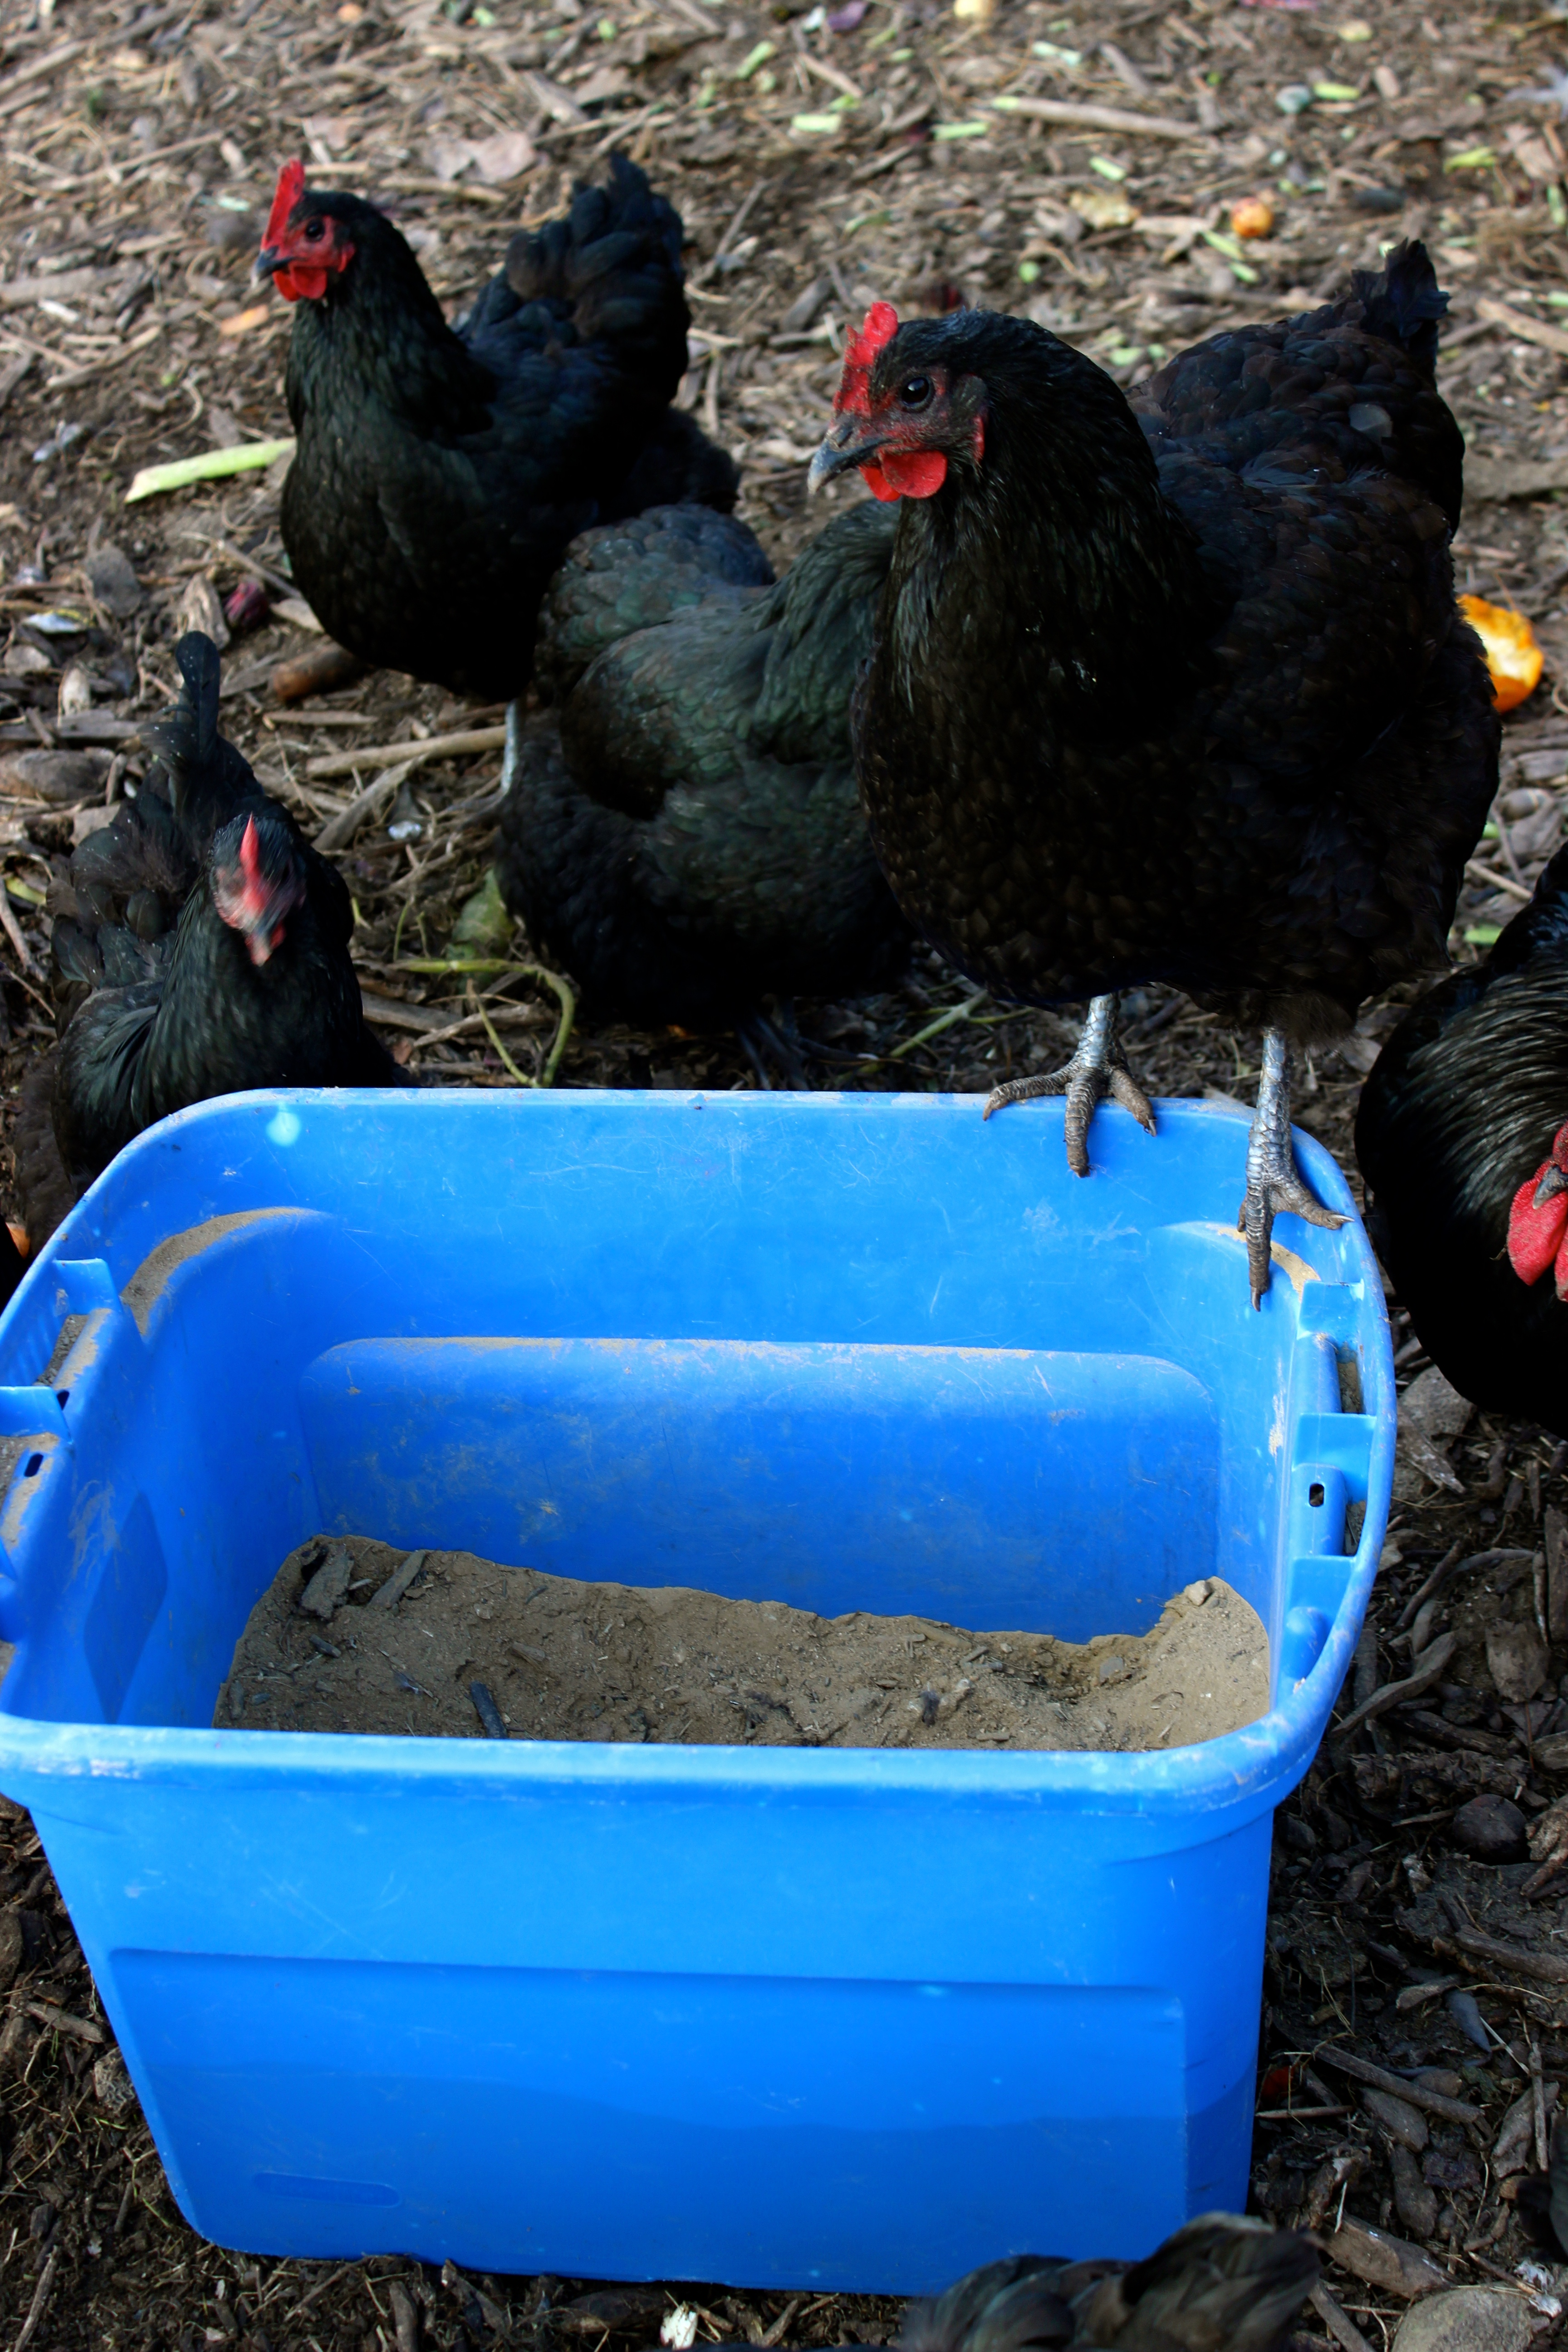 Chicken Coops That Work 5 Brilliant Ways Abundant Permaculture Parts Diagram Http Wwwnwbackyardveggiescom 2012 06 If Desired Provide An Outdoor Shelter Over Some Bare Earth For A Continual Dust Bath Ive Seen People Using Large Plastic Culvert Cut In Half